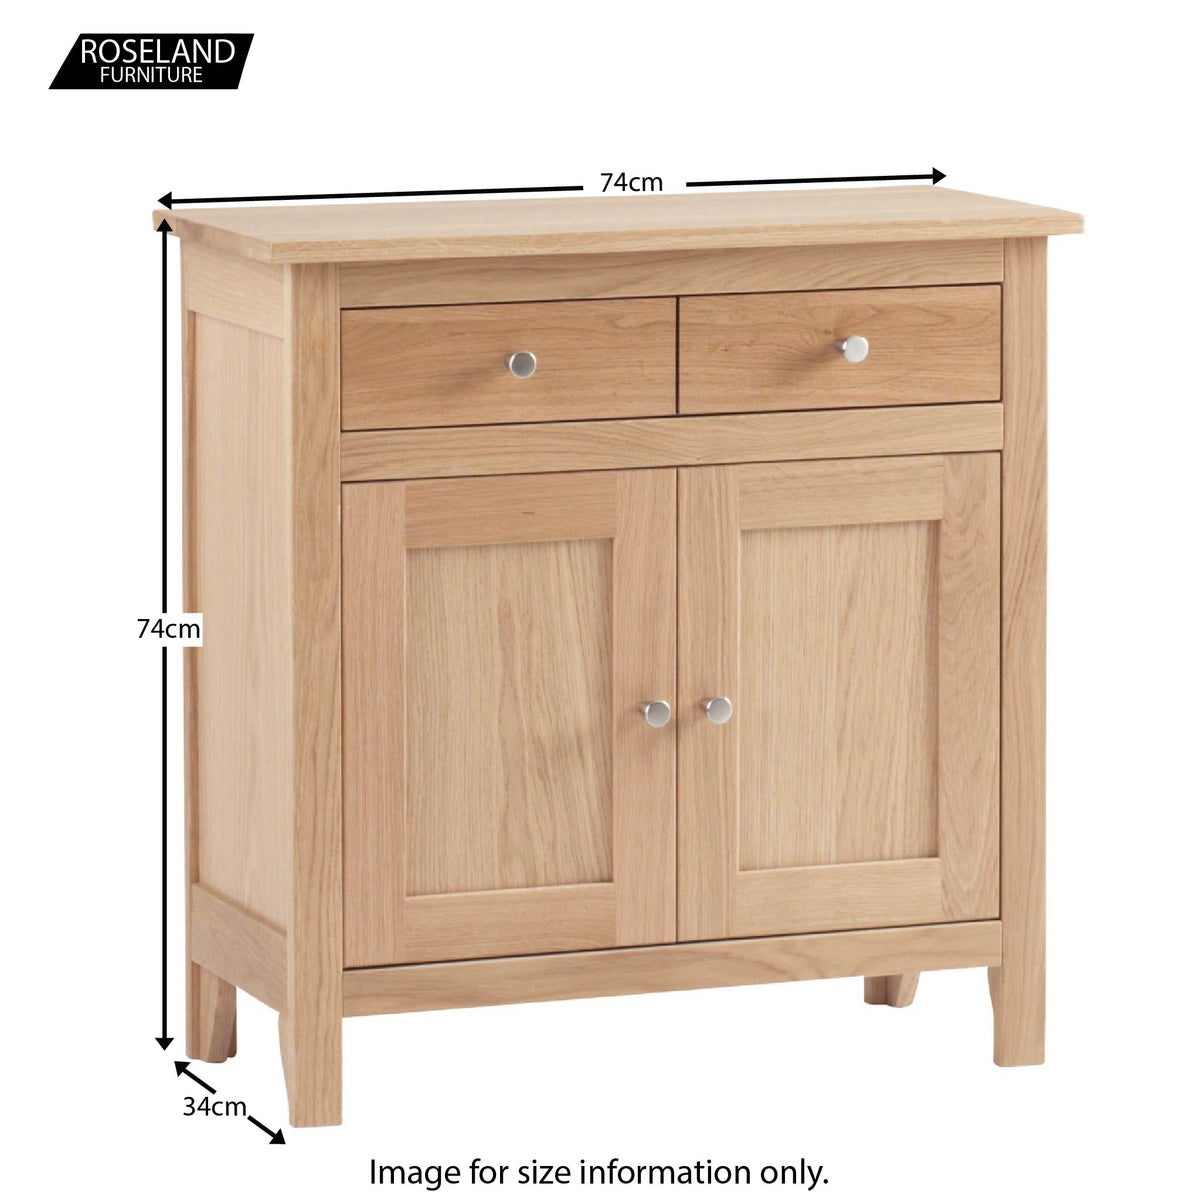 Dimensions - Falmouth Oak Mini Sideboard